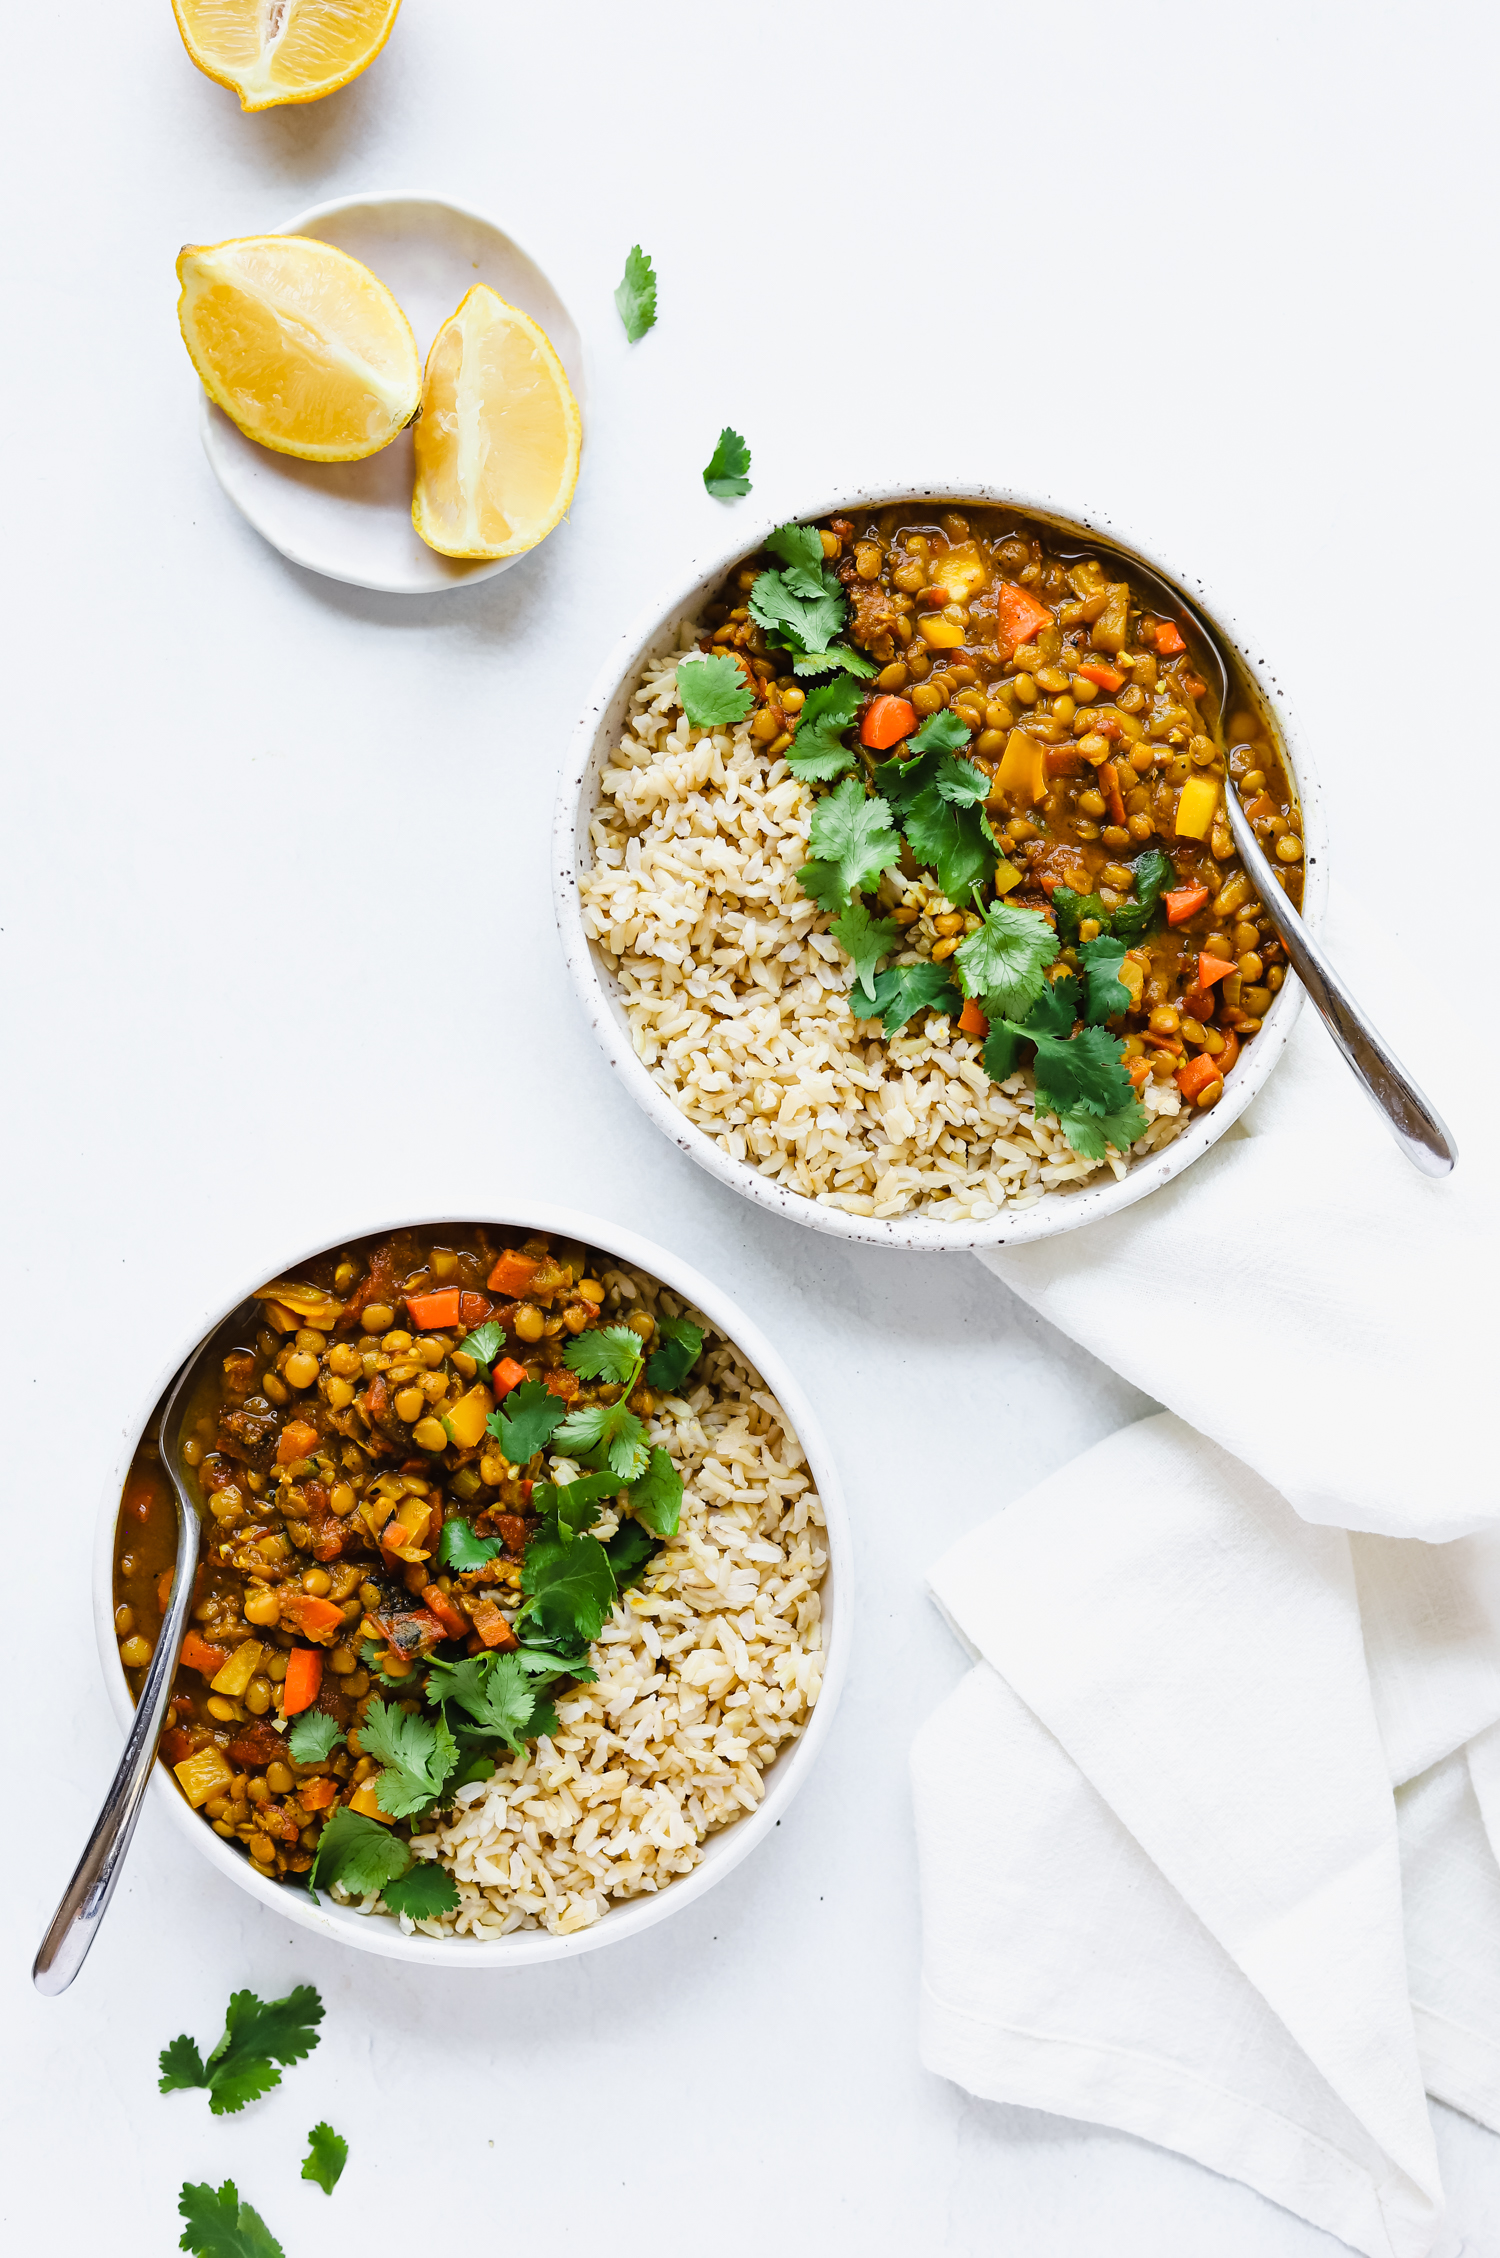 Two bowls of vegetarian almond milk lentil curry with rice, cilantro, and lemons.